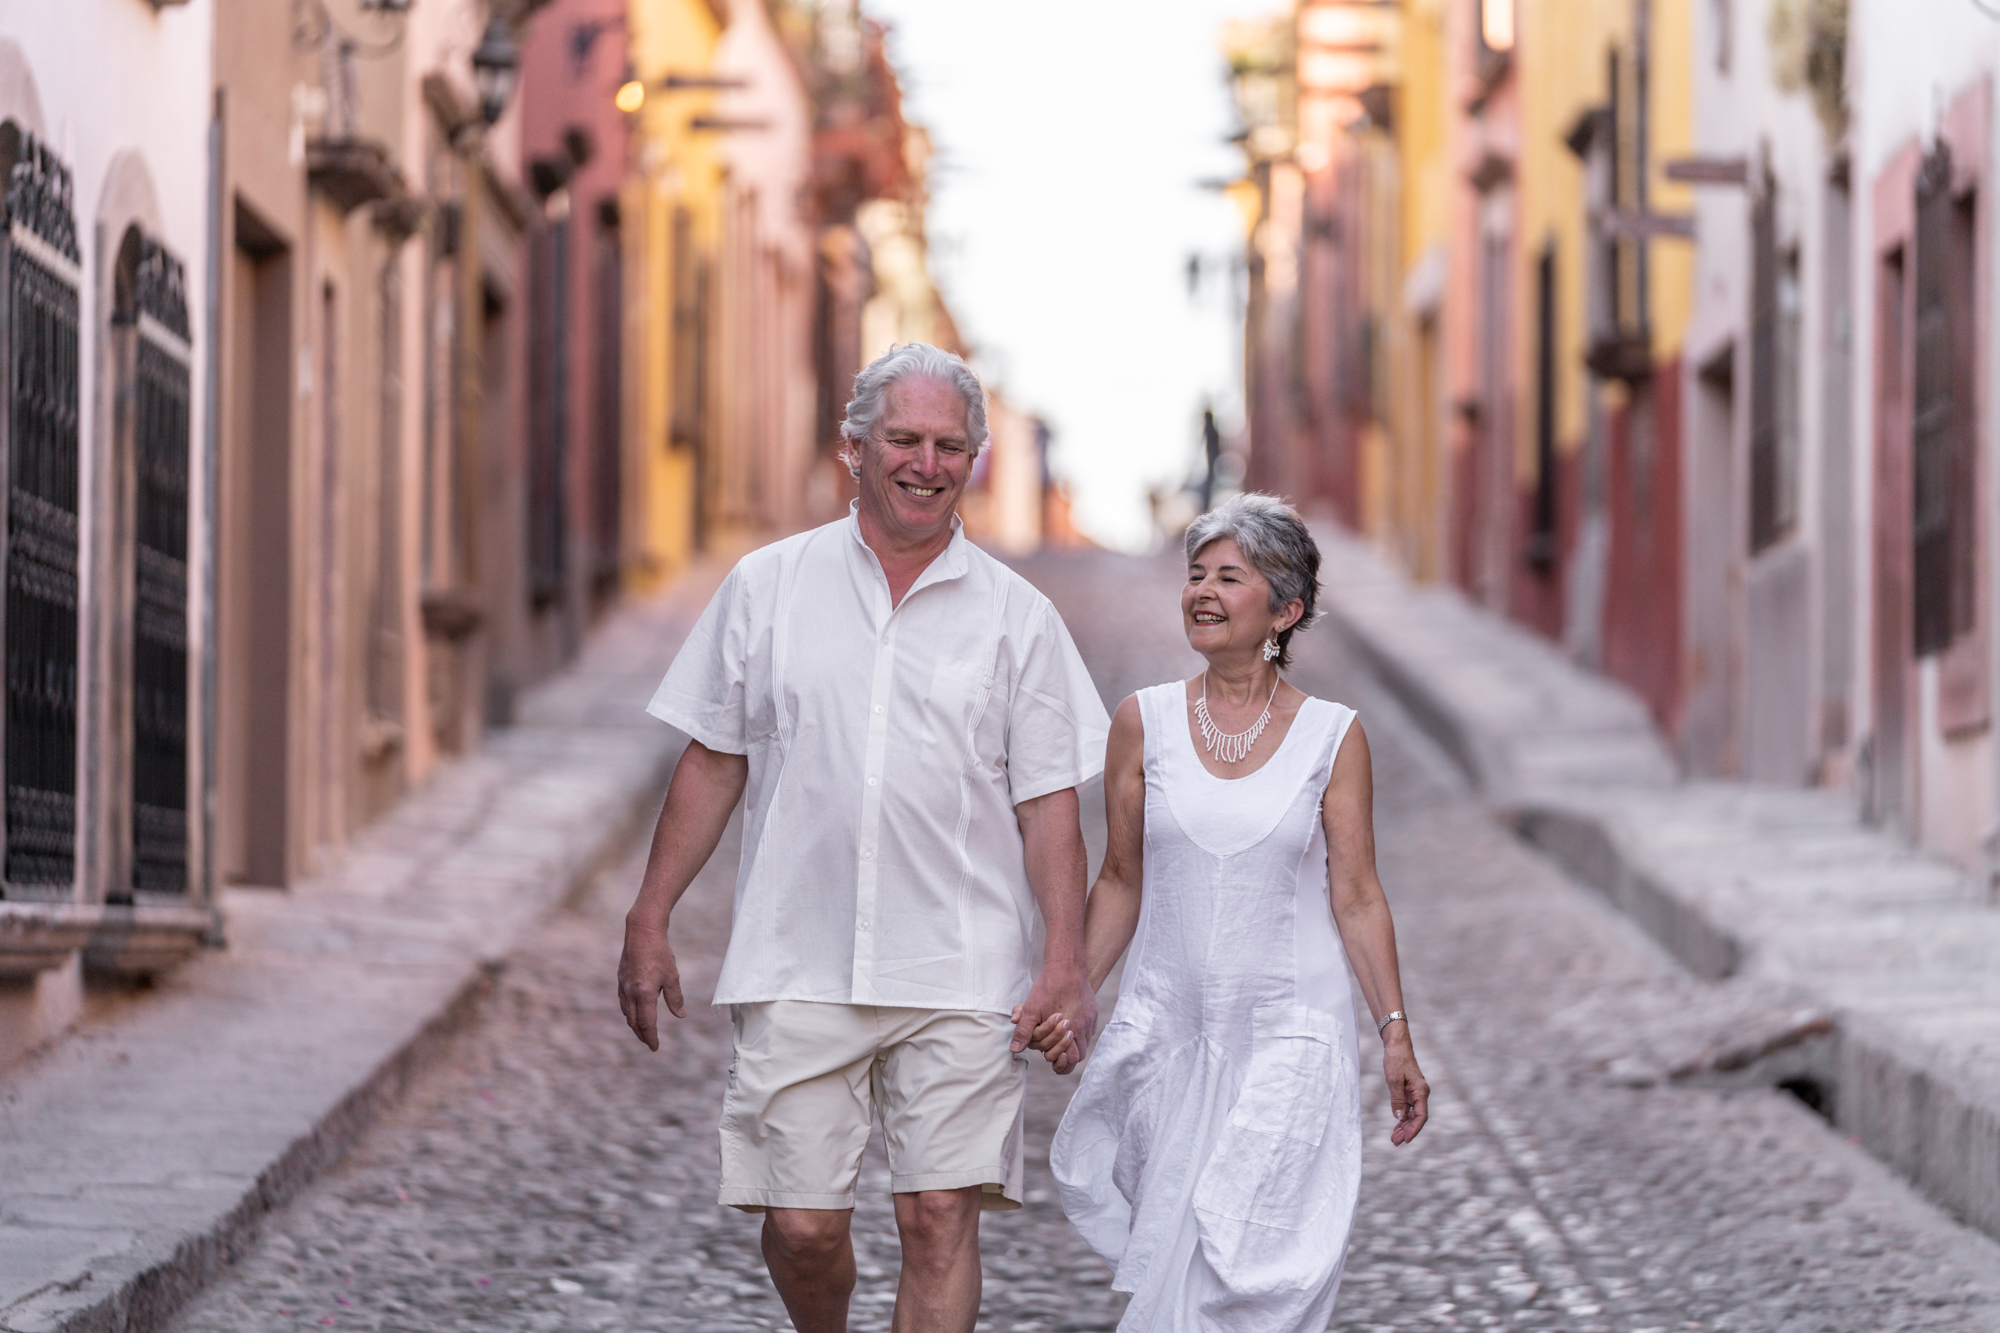 Photoshoot session in San Miguel de Allende with Suzanne and Leo-20.jpg